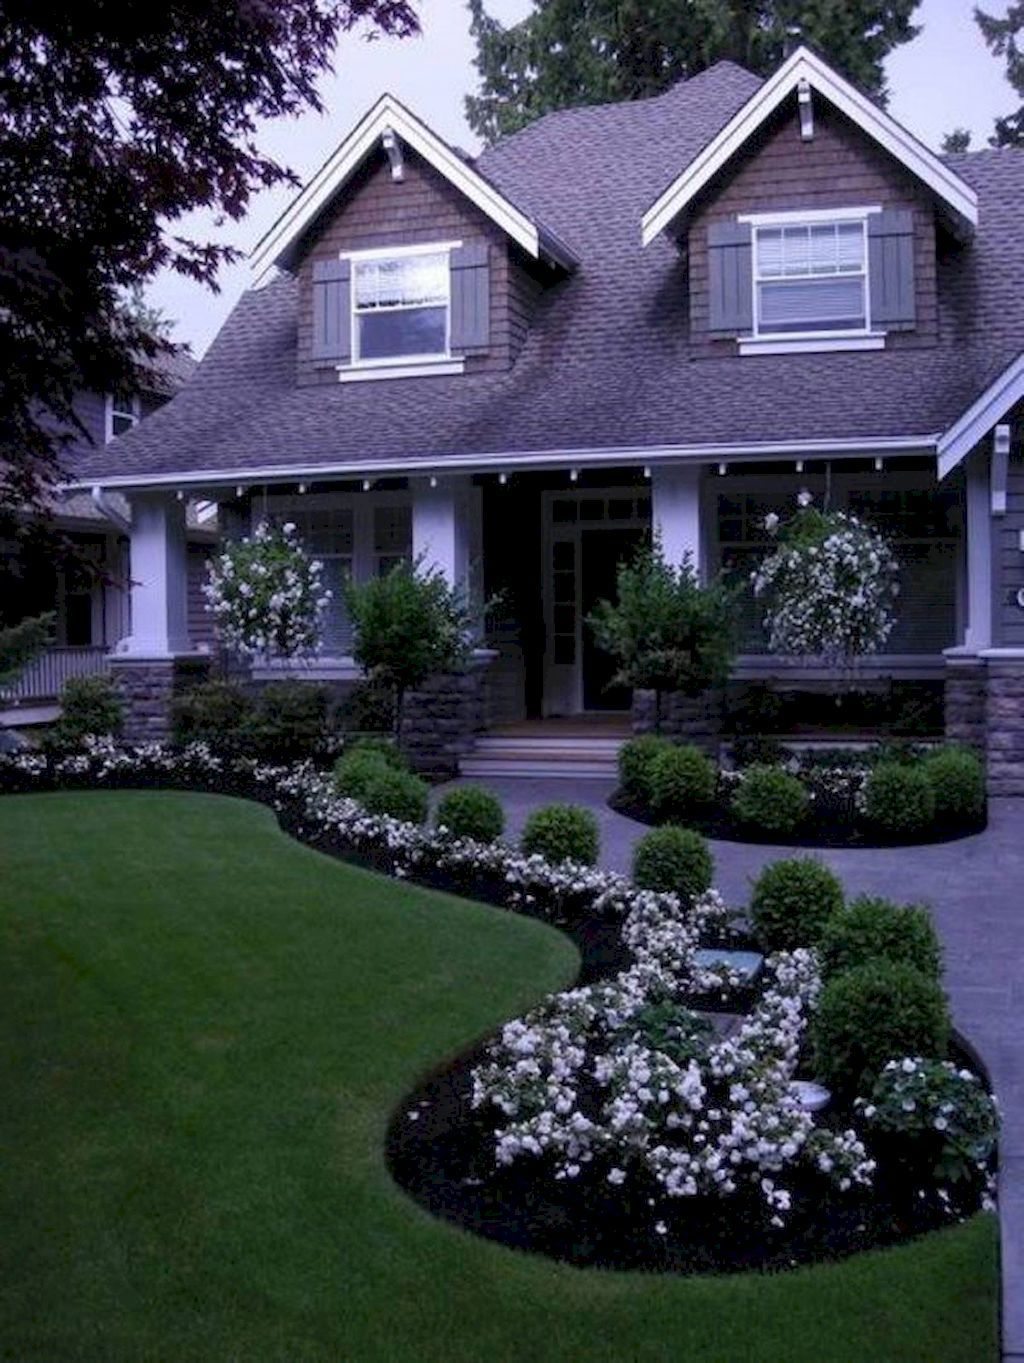 40 beautiful front yard landscaping ideas yard for Garden design ideas in zimbabwe